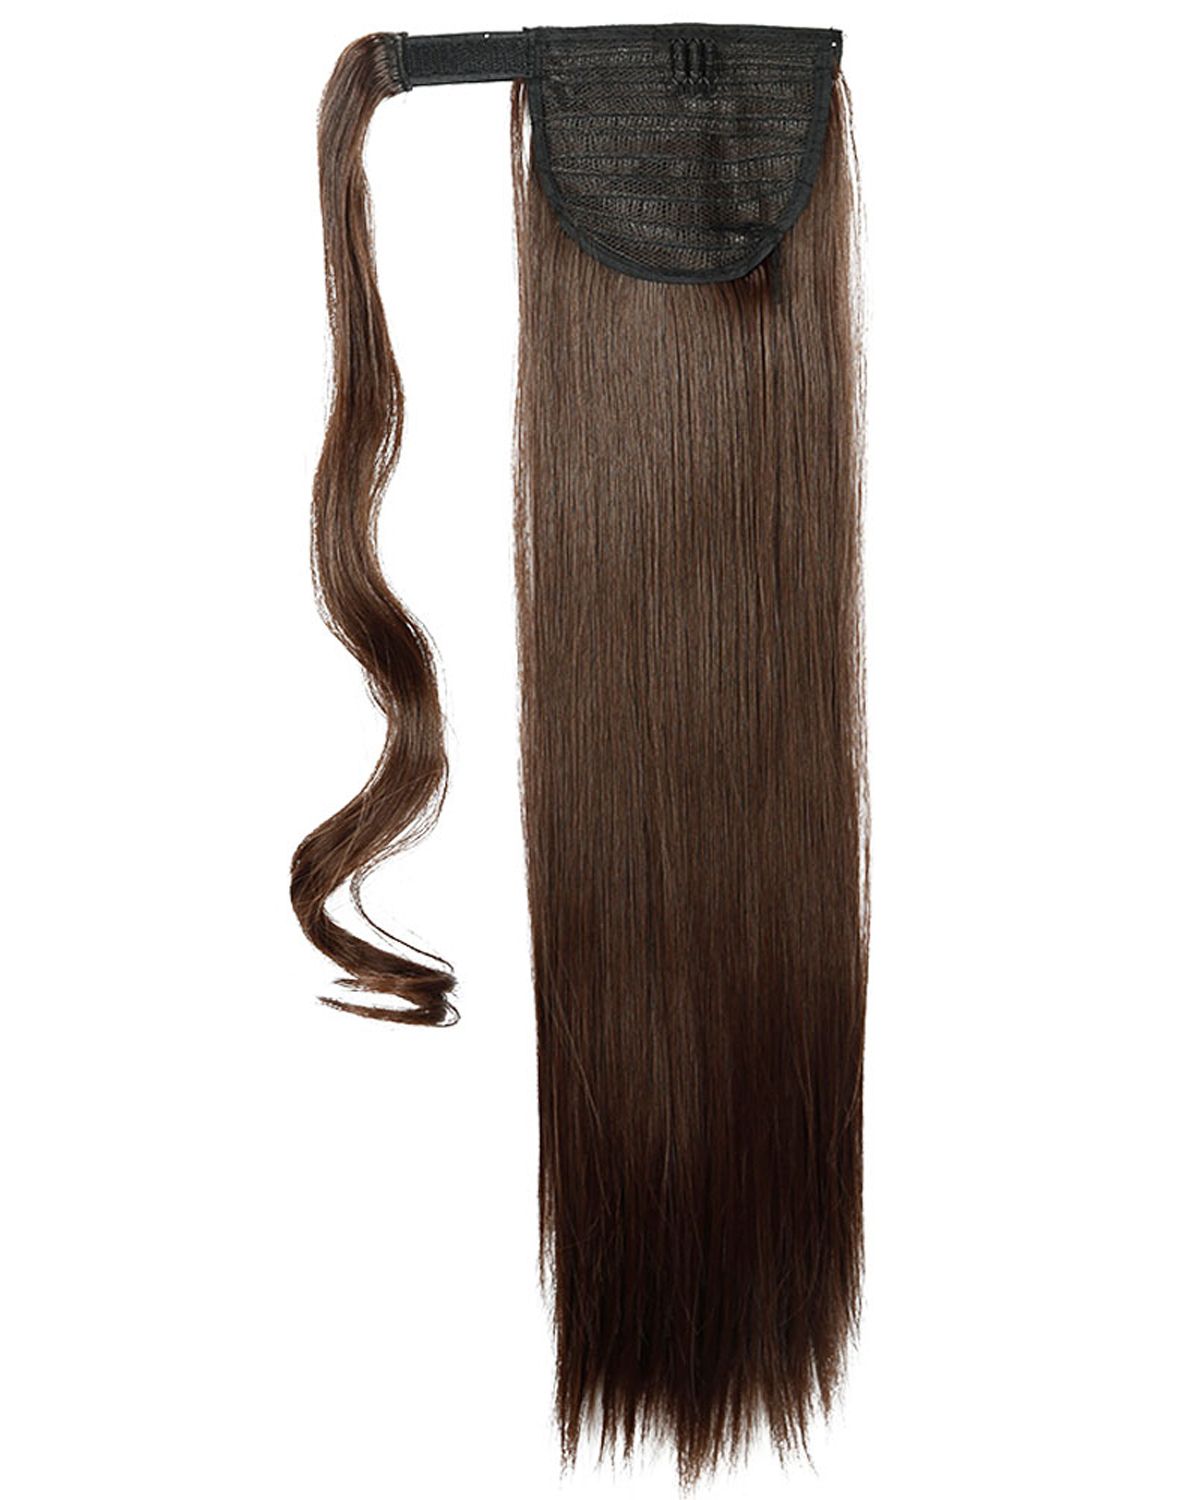 Florata 18 24 Long Straightcurly Velcro Wrap Around Ponytail Hair